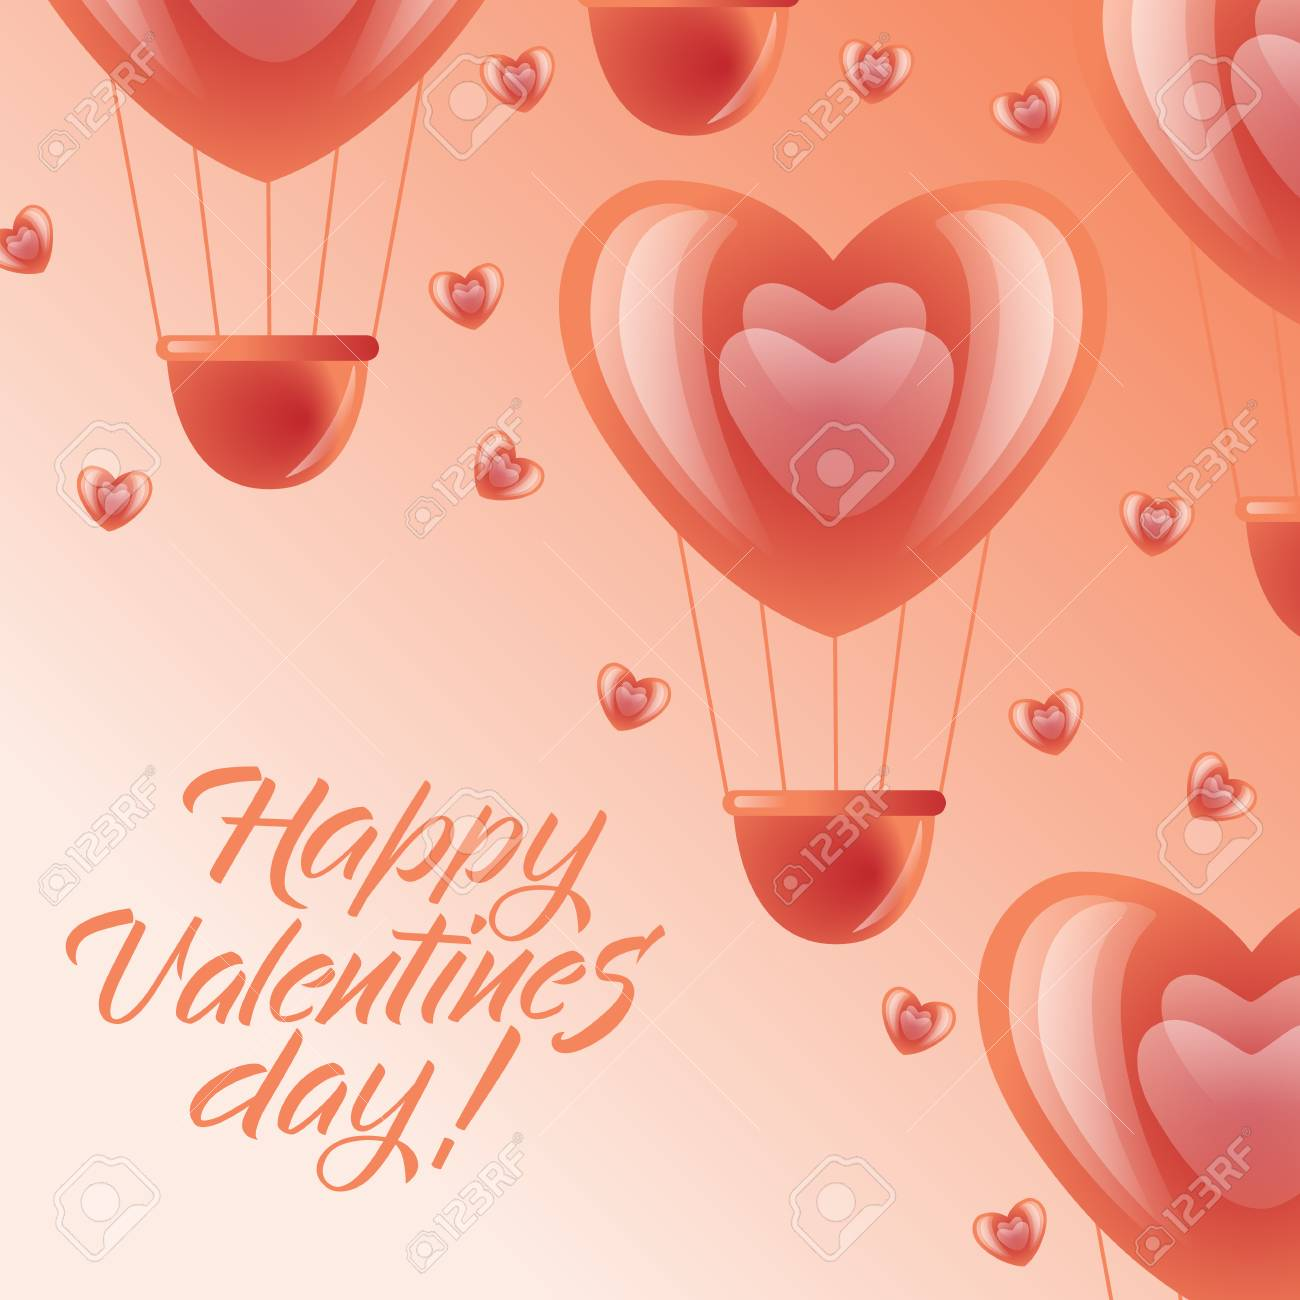 Happy Valentines Day Greeting Card Design With Red And Pink